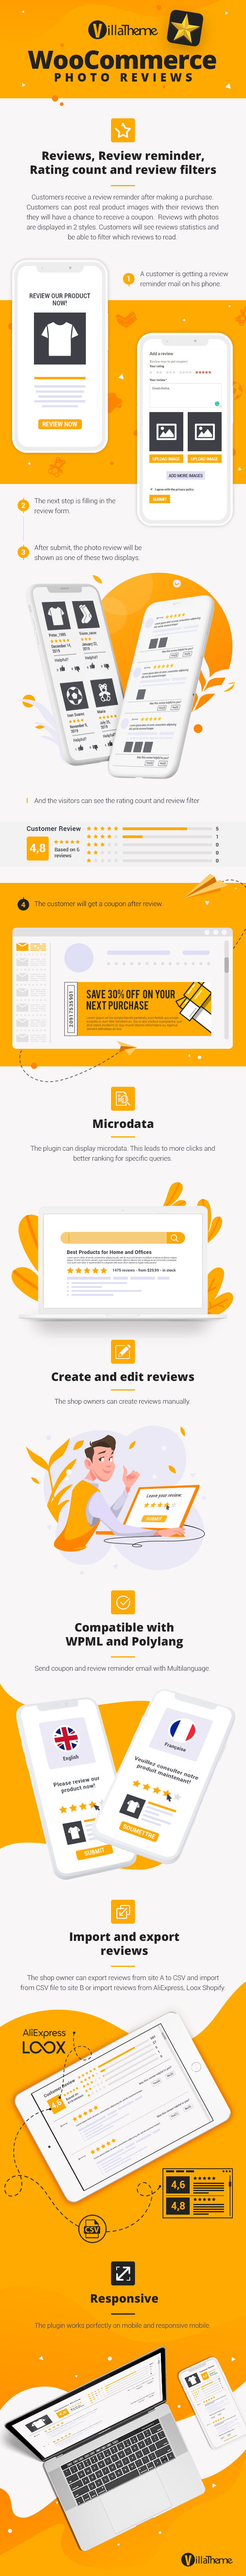 WooCommerce Photo Reviews - Review Reminders - Review for Discounts - 5